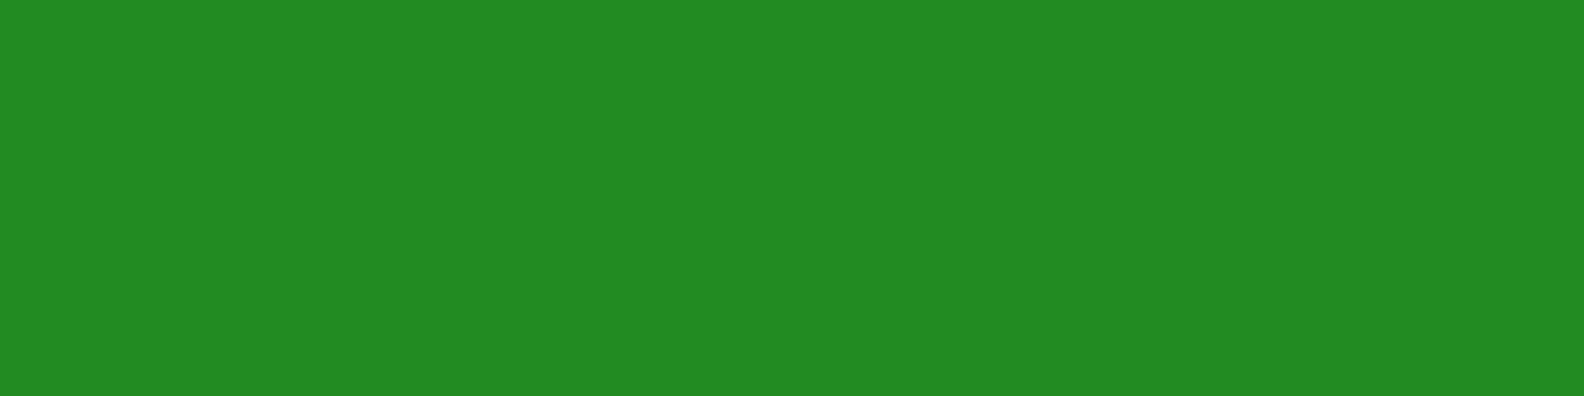 1584x396 Forest Green For Web Solid Color Background